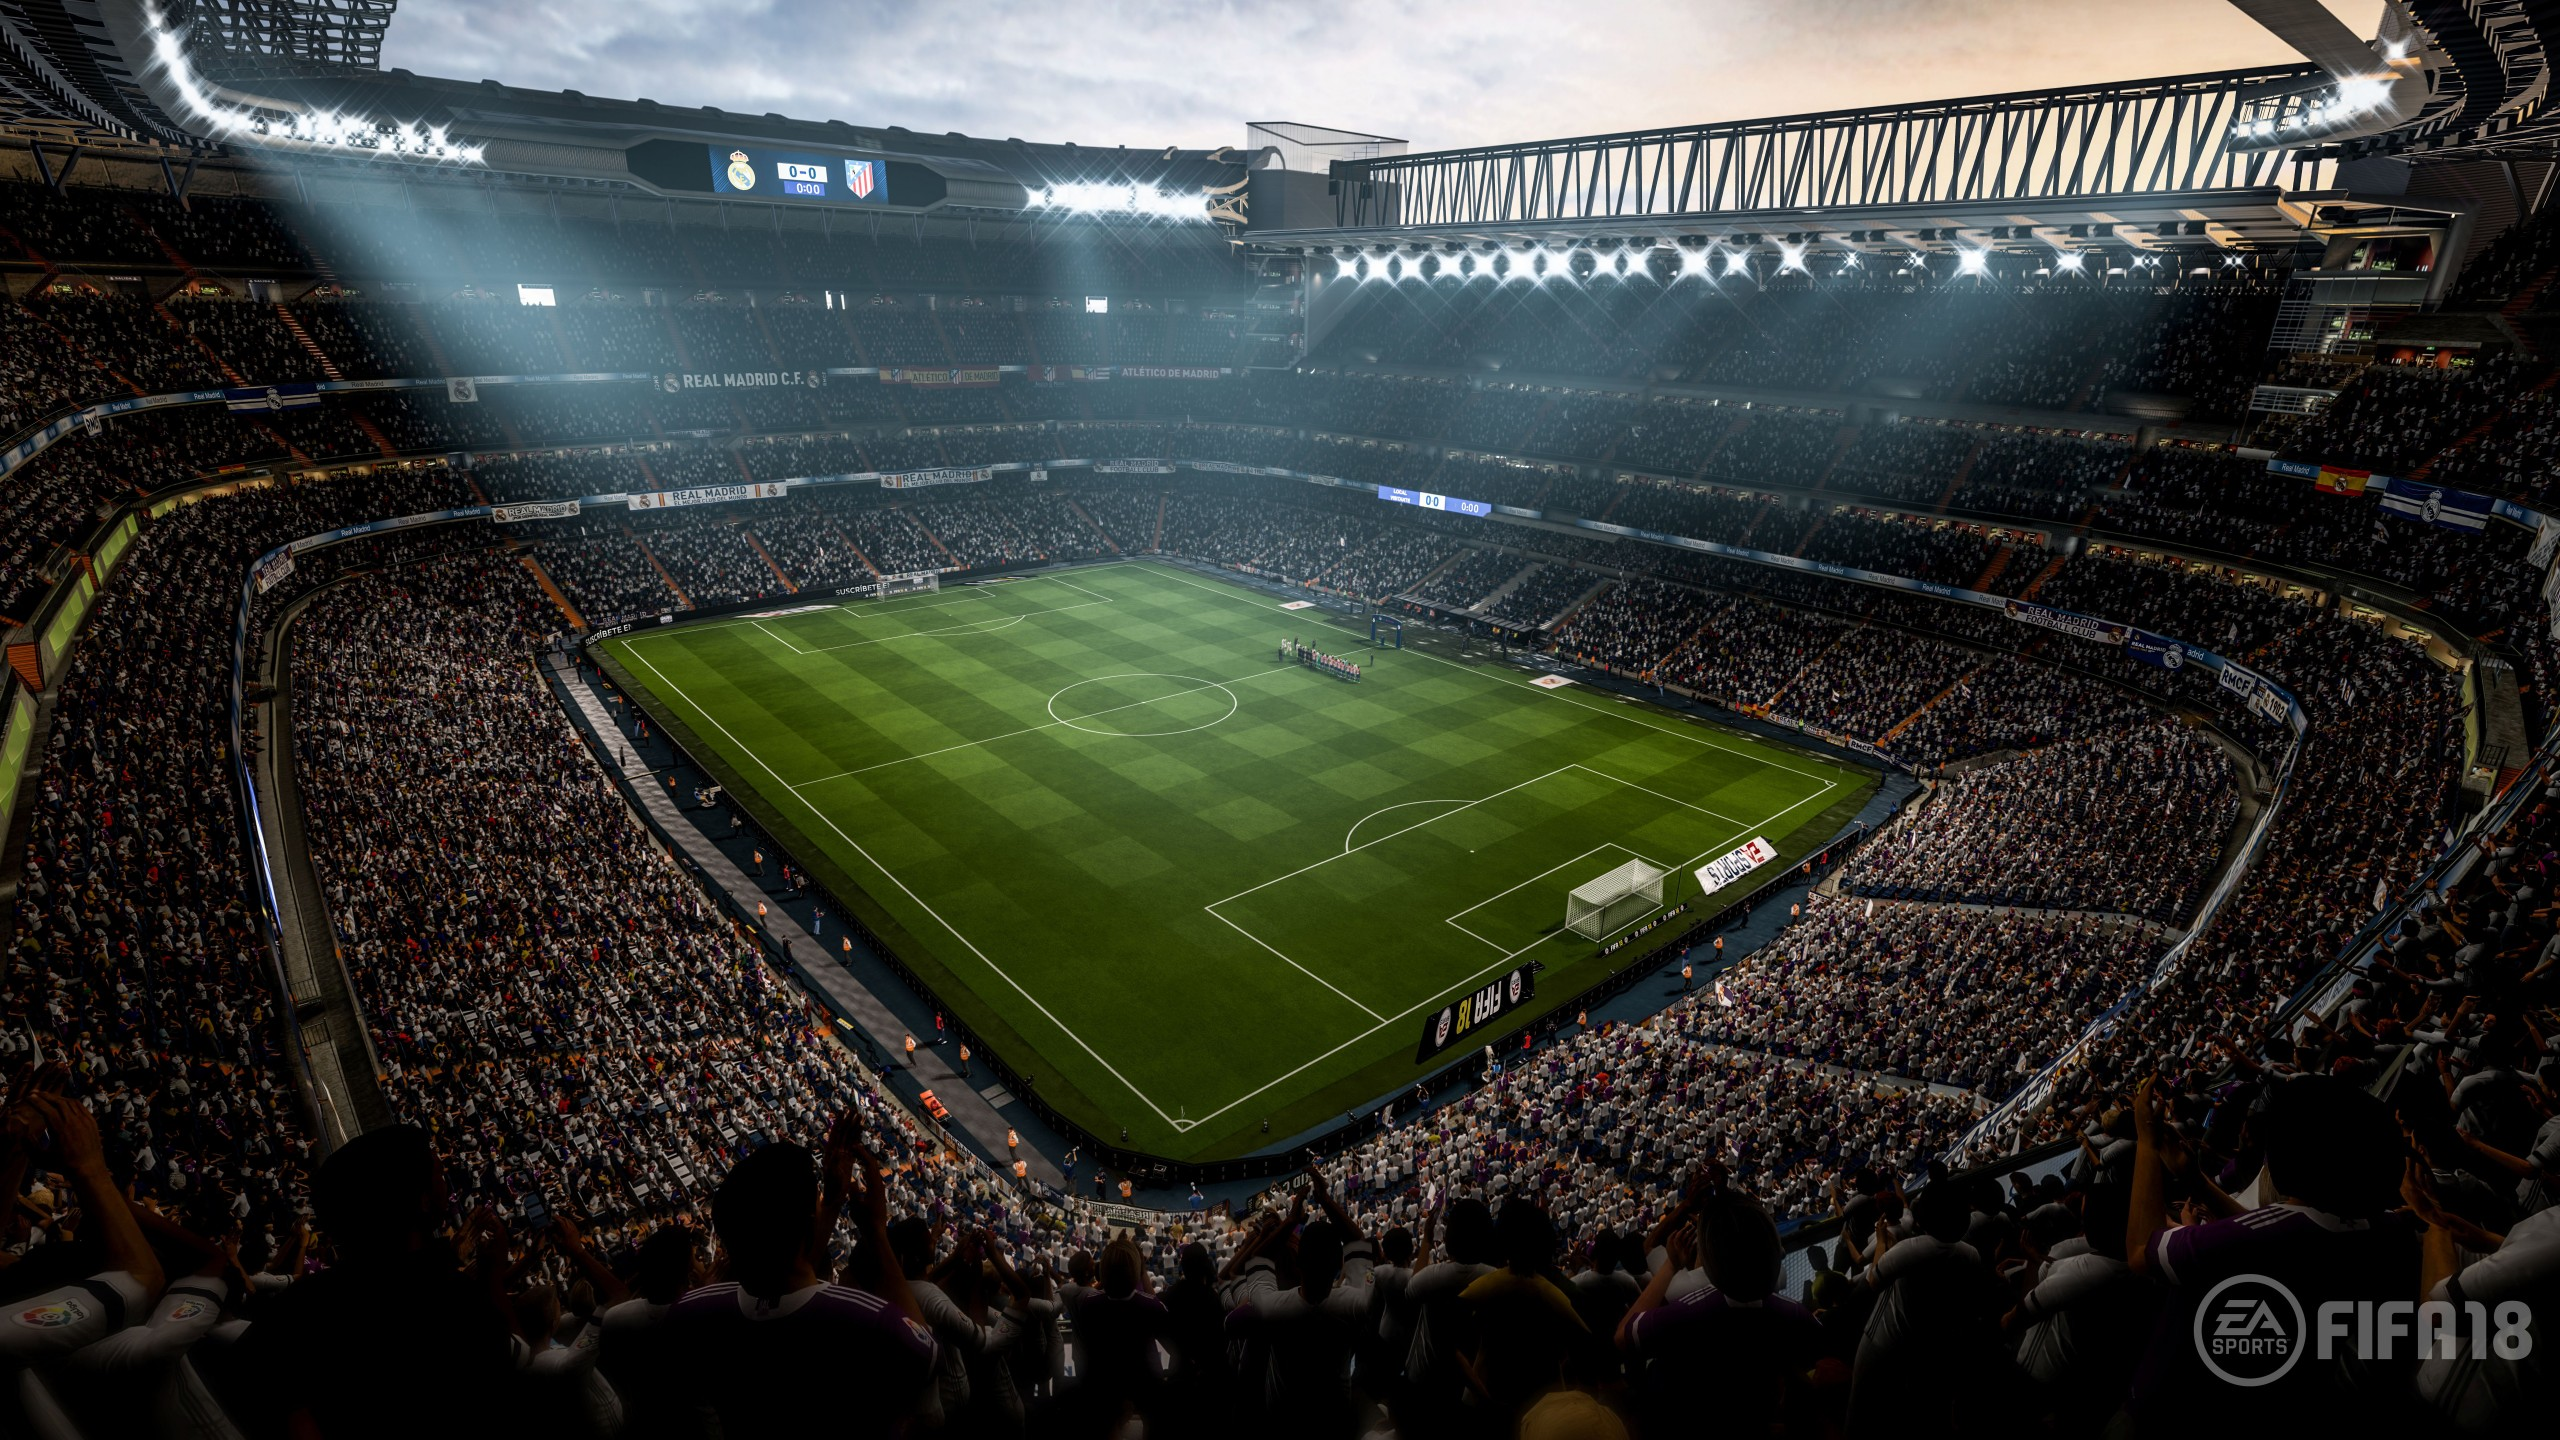 Hd Wide Wallpapers Nature Fifa 18 Soccer Video Game Stadium 4k 8k Wallpapers Hd